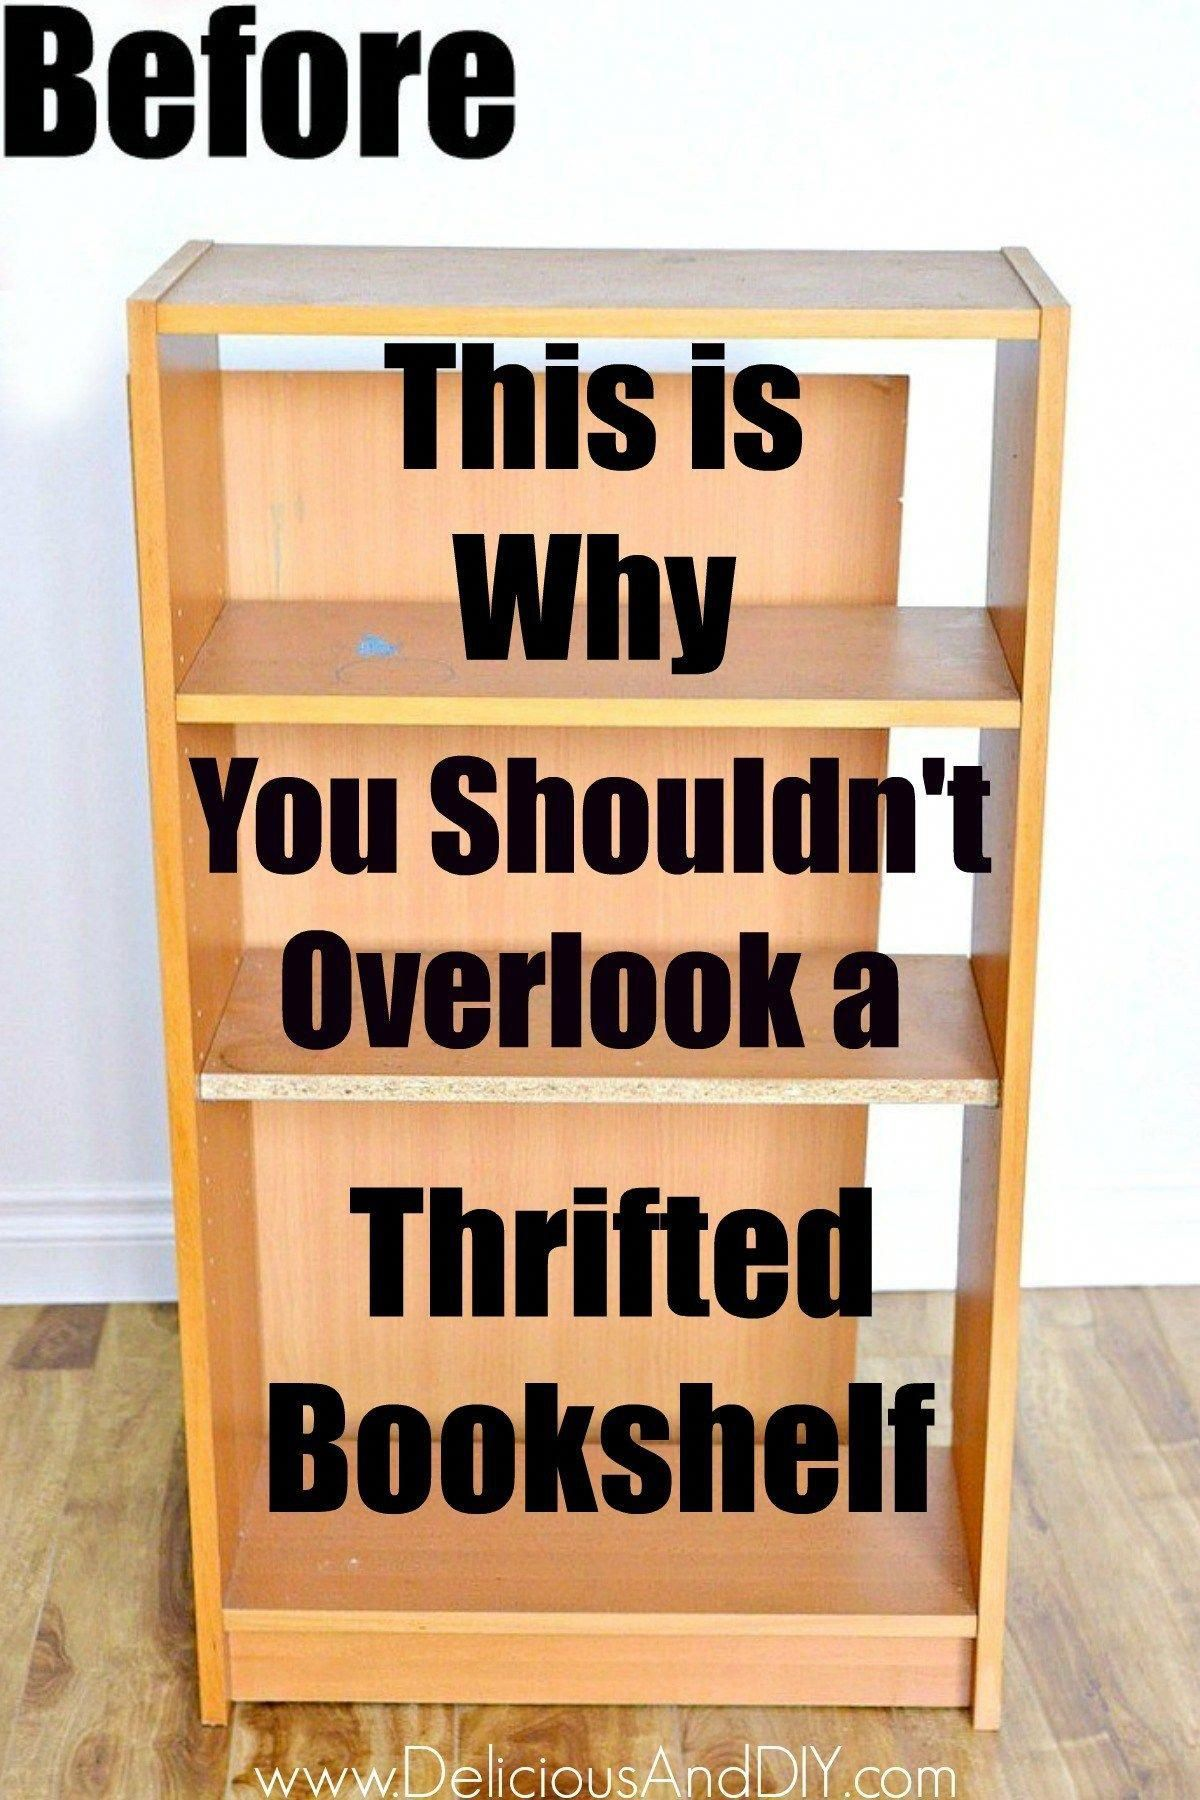 Upcycle A Bookshelf With Peel And Stick Wallpaper Delicious And Diy Bookshelves Diy Bookshelf Makeover Diy Furniture Decor